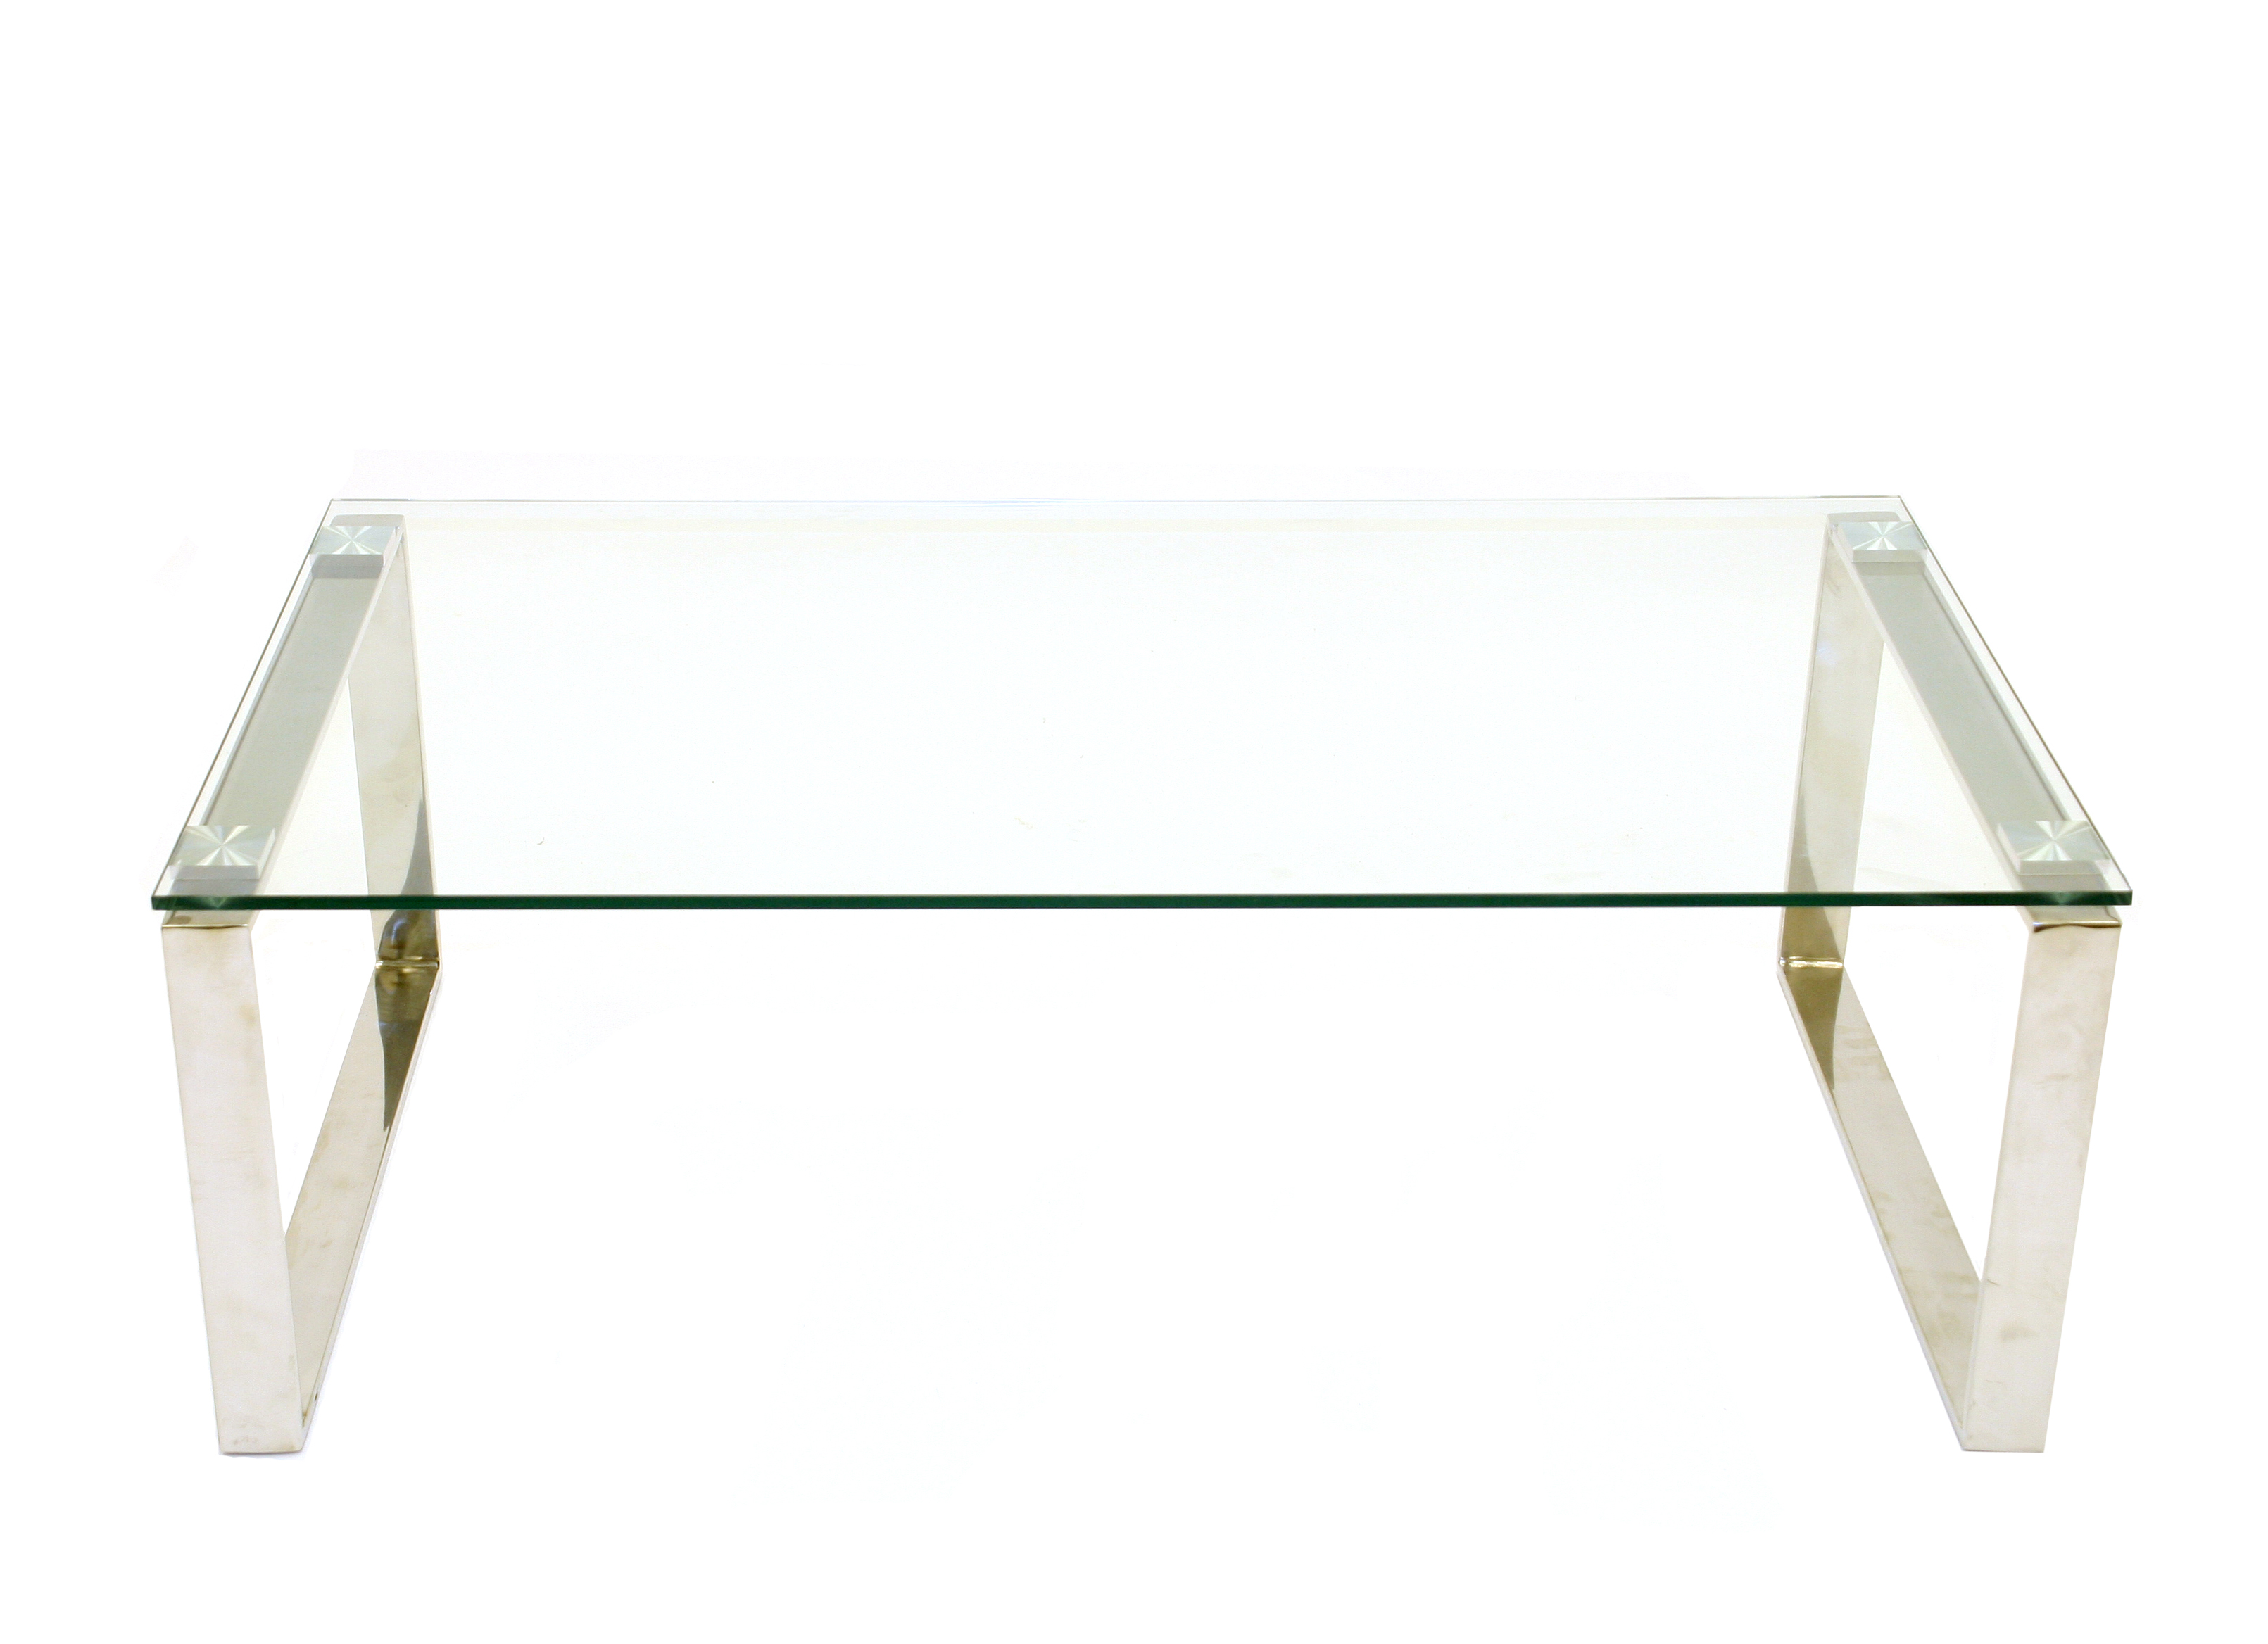 Glass coffee table with silver metal legs - BE Event Hire